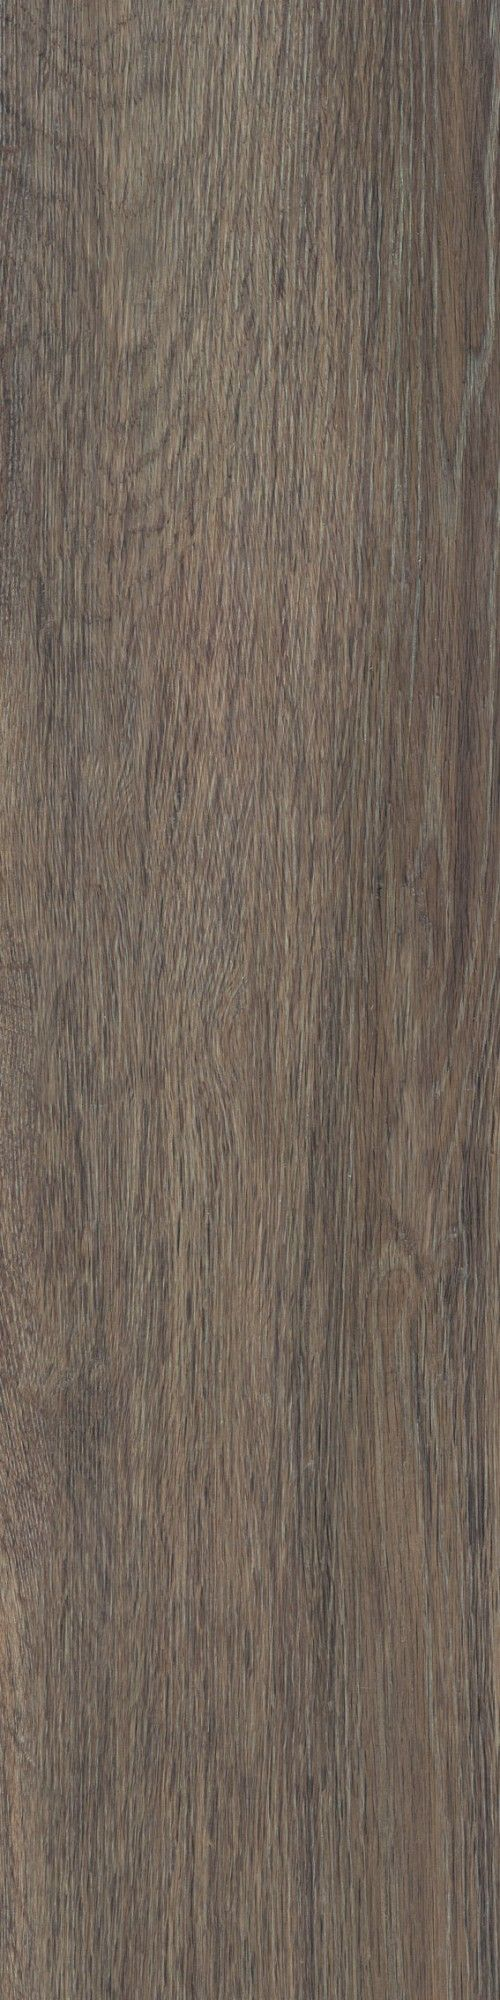 Campani Legni Vintage Grey Wood Porcelain Tile Wood Grain Floor Time For Masculine Guest Bath